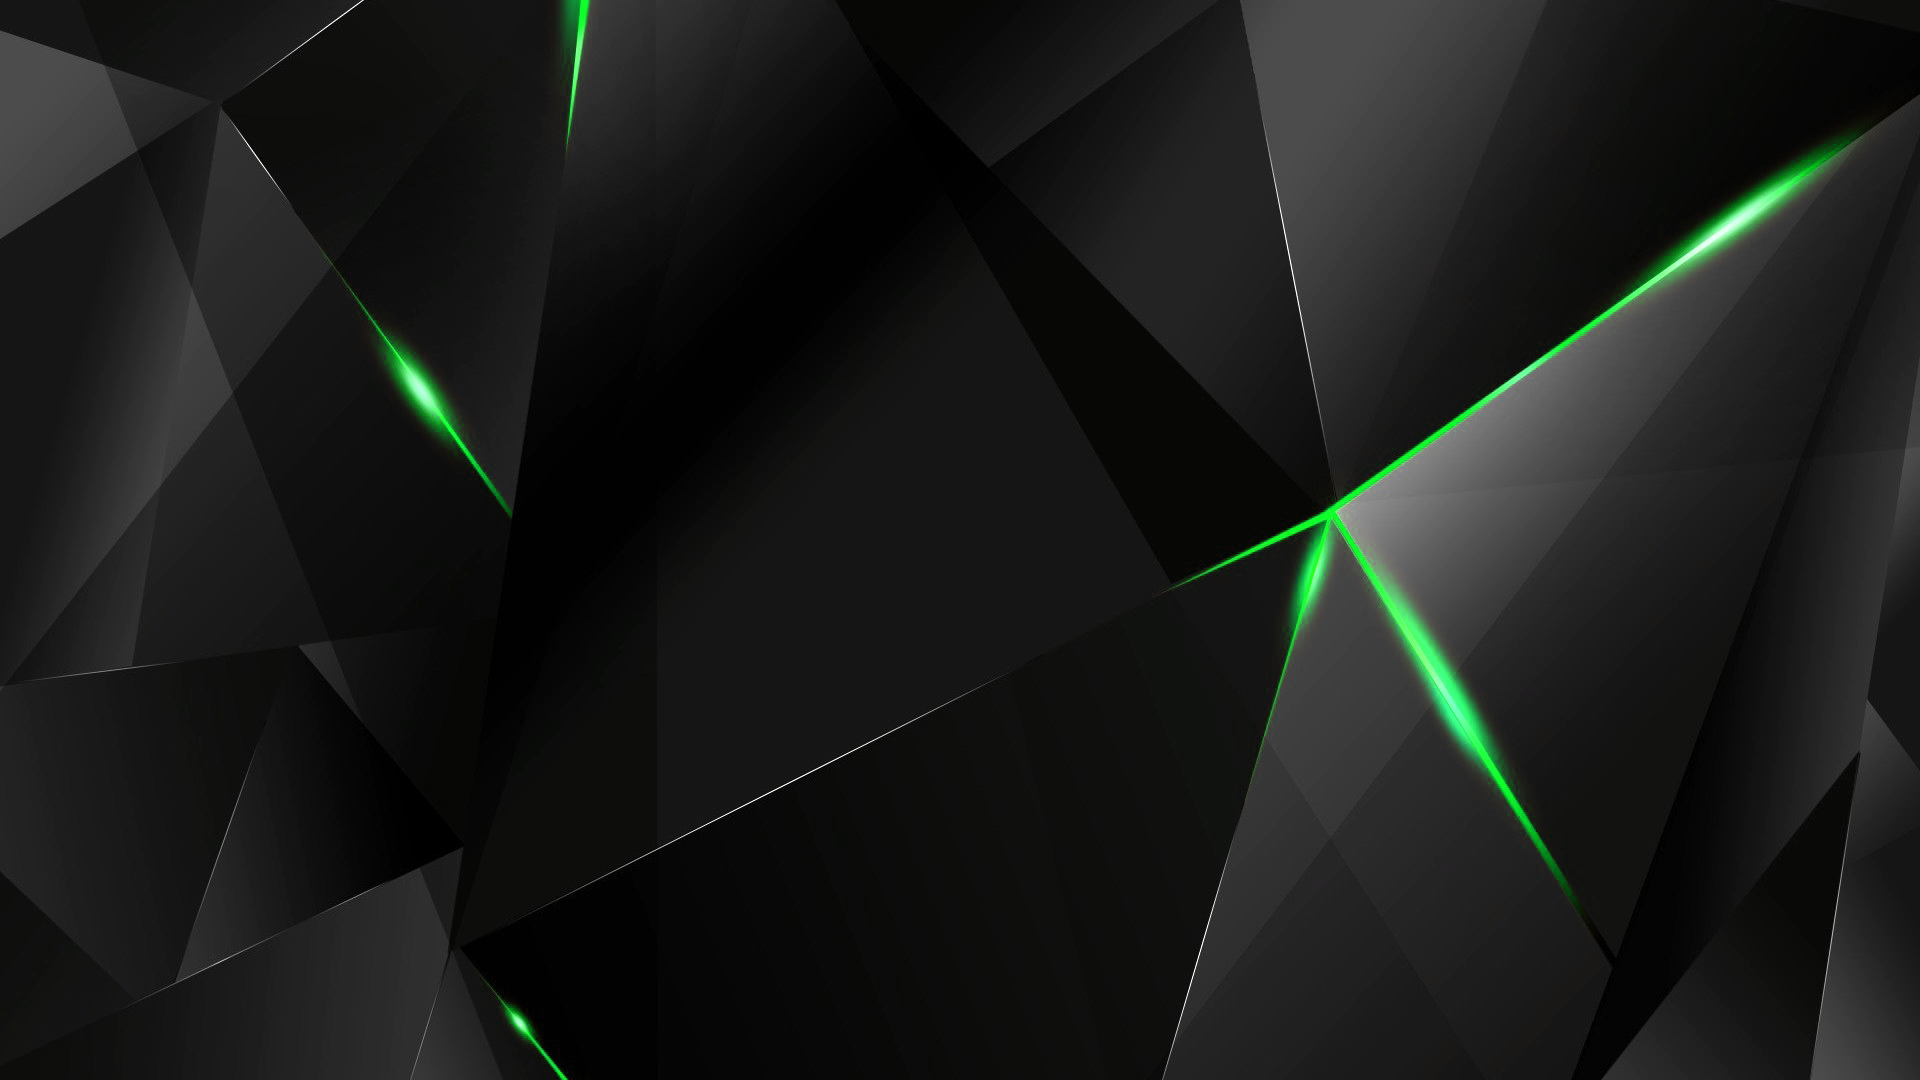 Wallpapers Green Abstract Polygons Black Bg By Kaminohunter On Deviantart